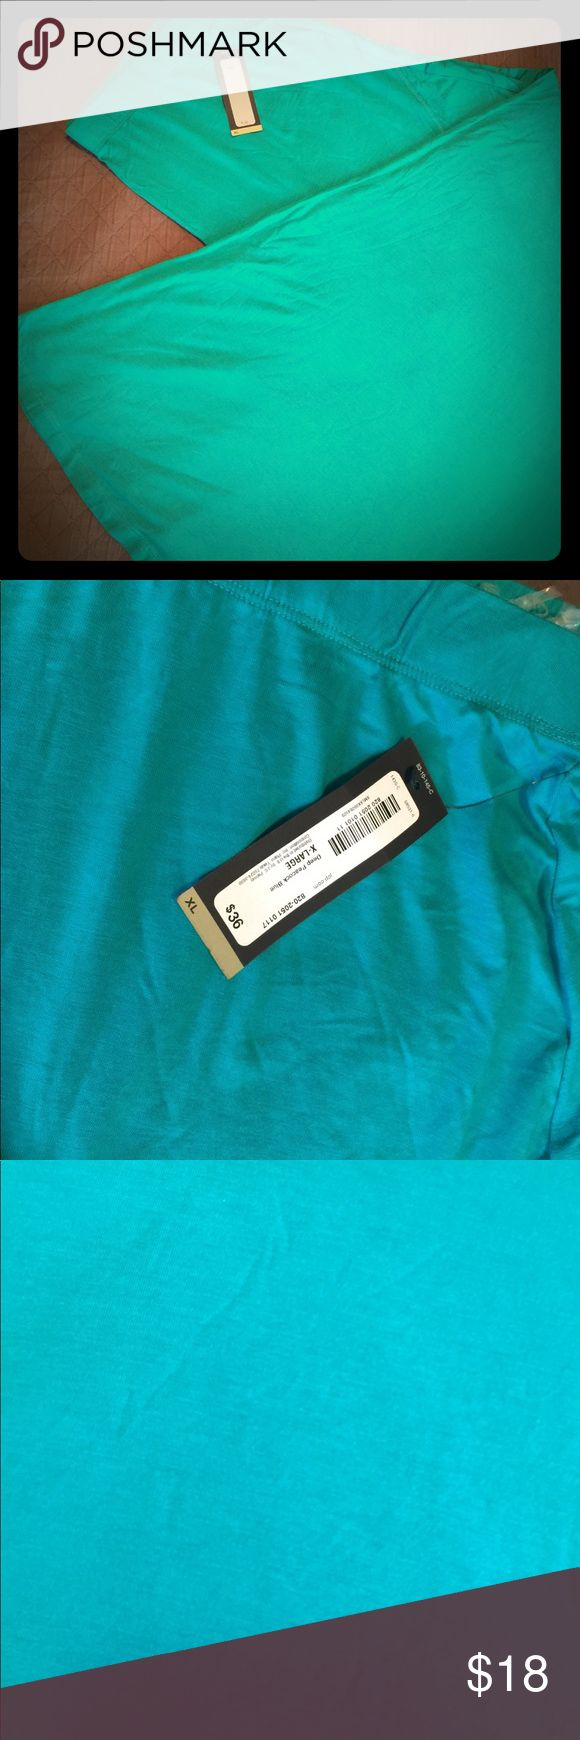 NWT-Deep Turquoise Maxi Skirt She ft, stretchy material--gorgeous year round color! Fits to at least 18/20W. Worthington Skirts Maxi